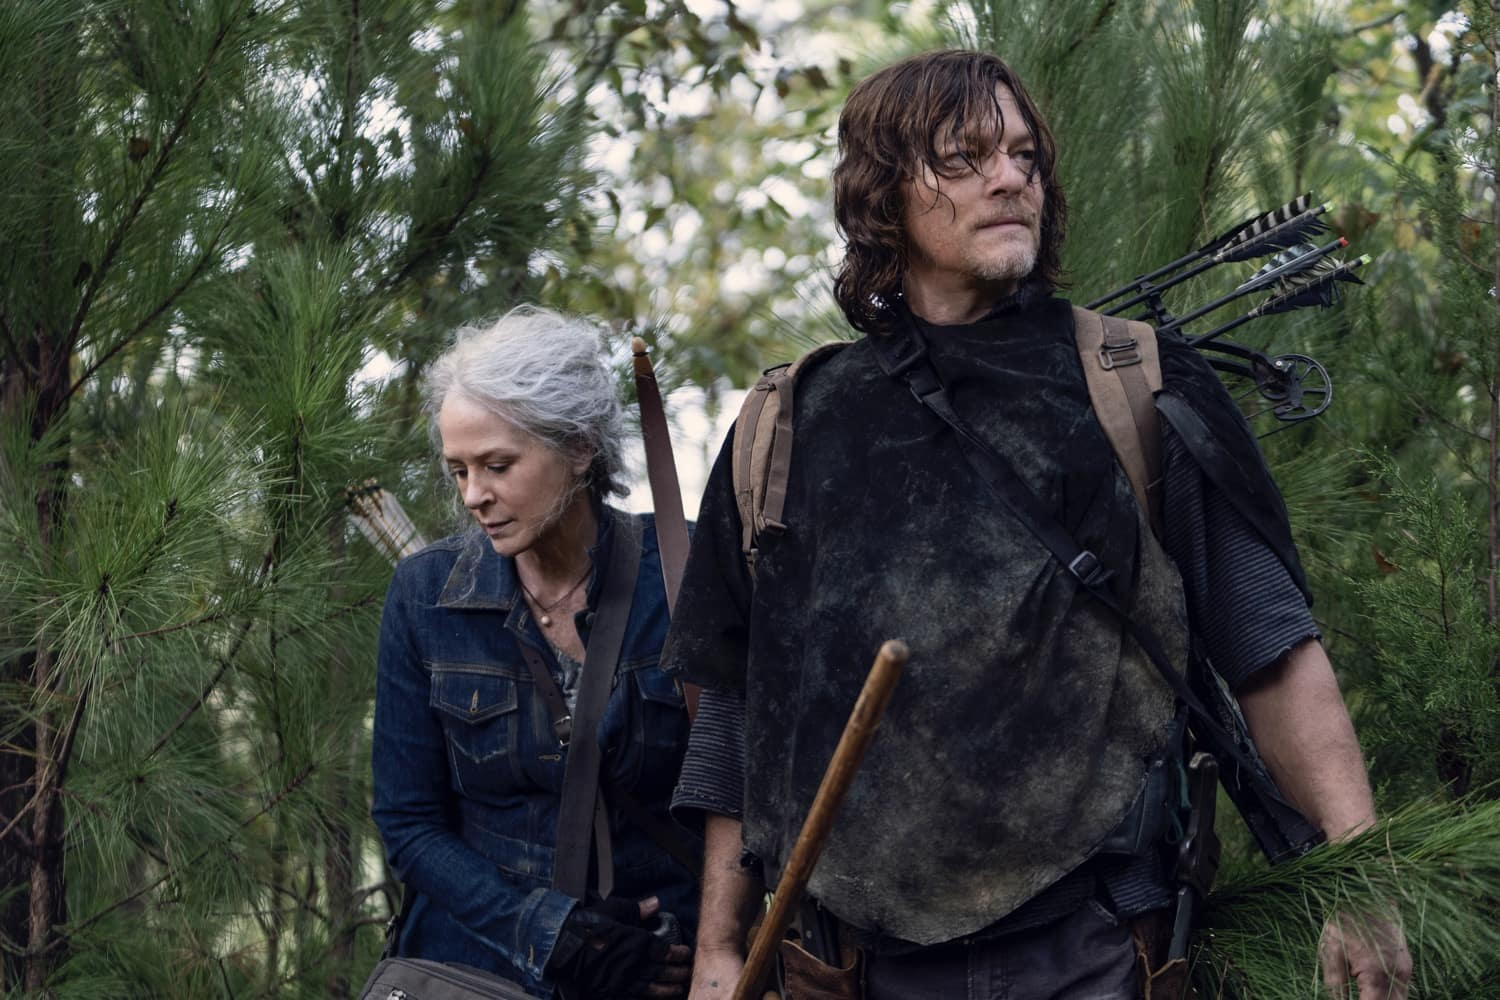 THE WALKING DEAD Season 10 Episode 18 Photos Find Me